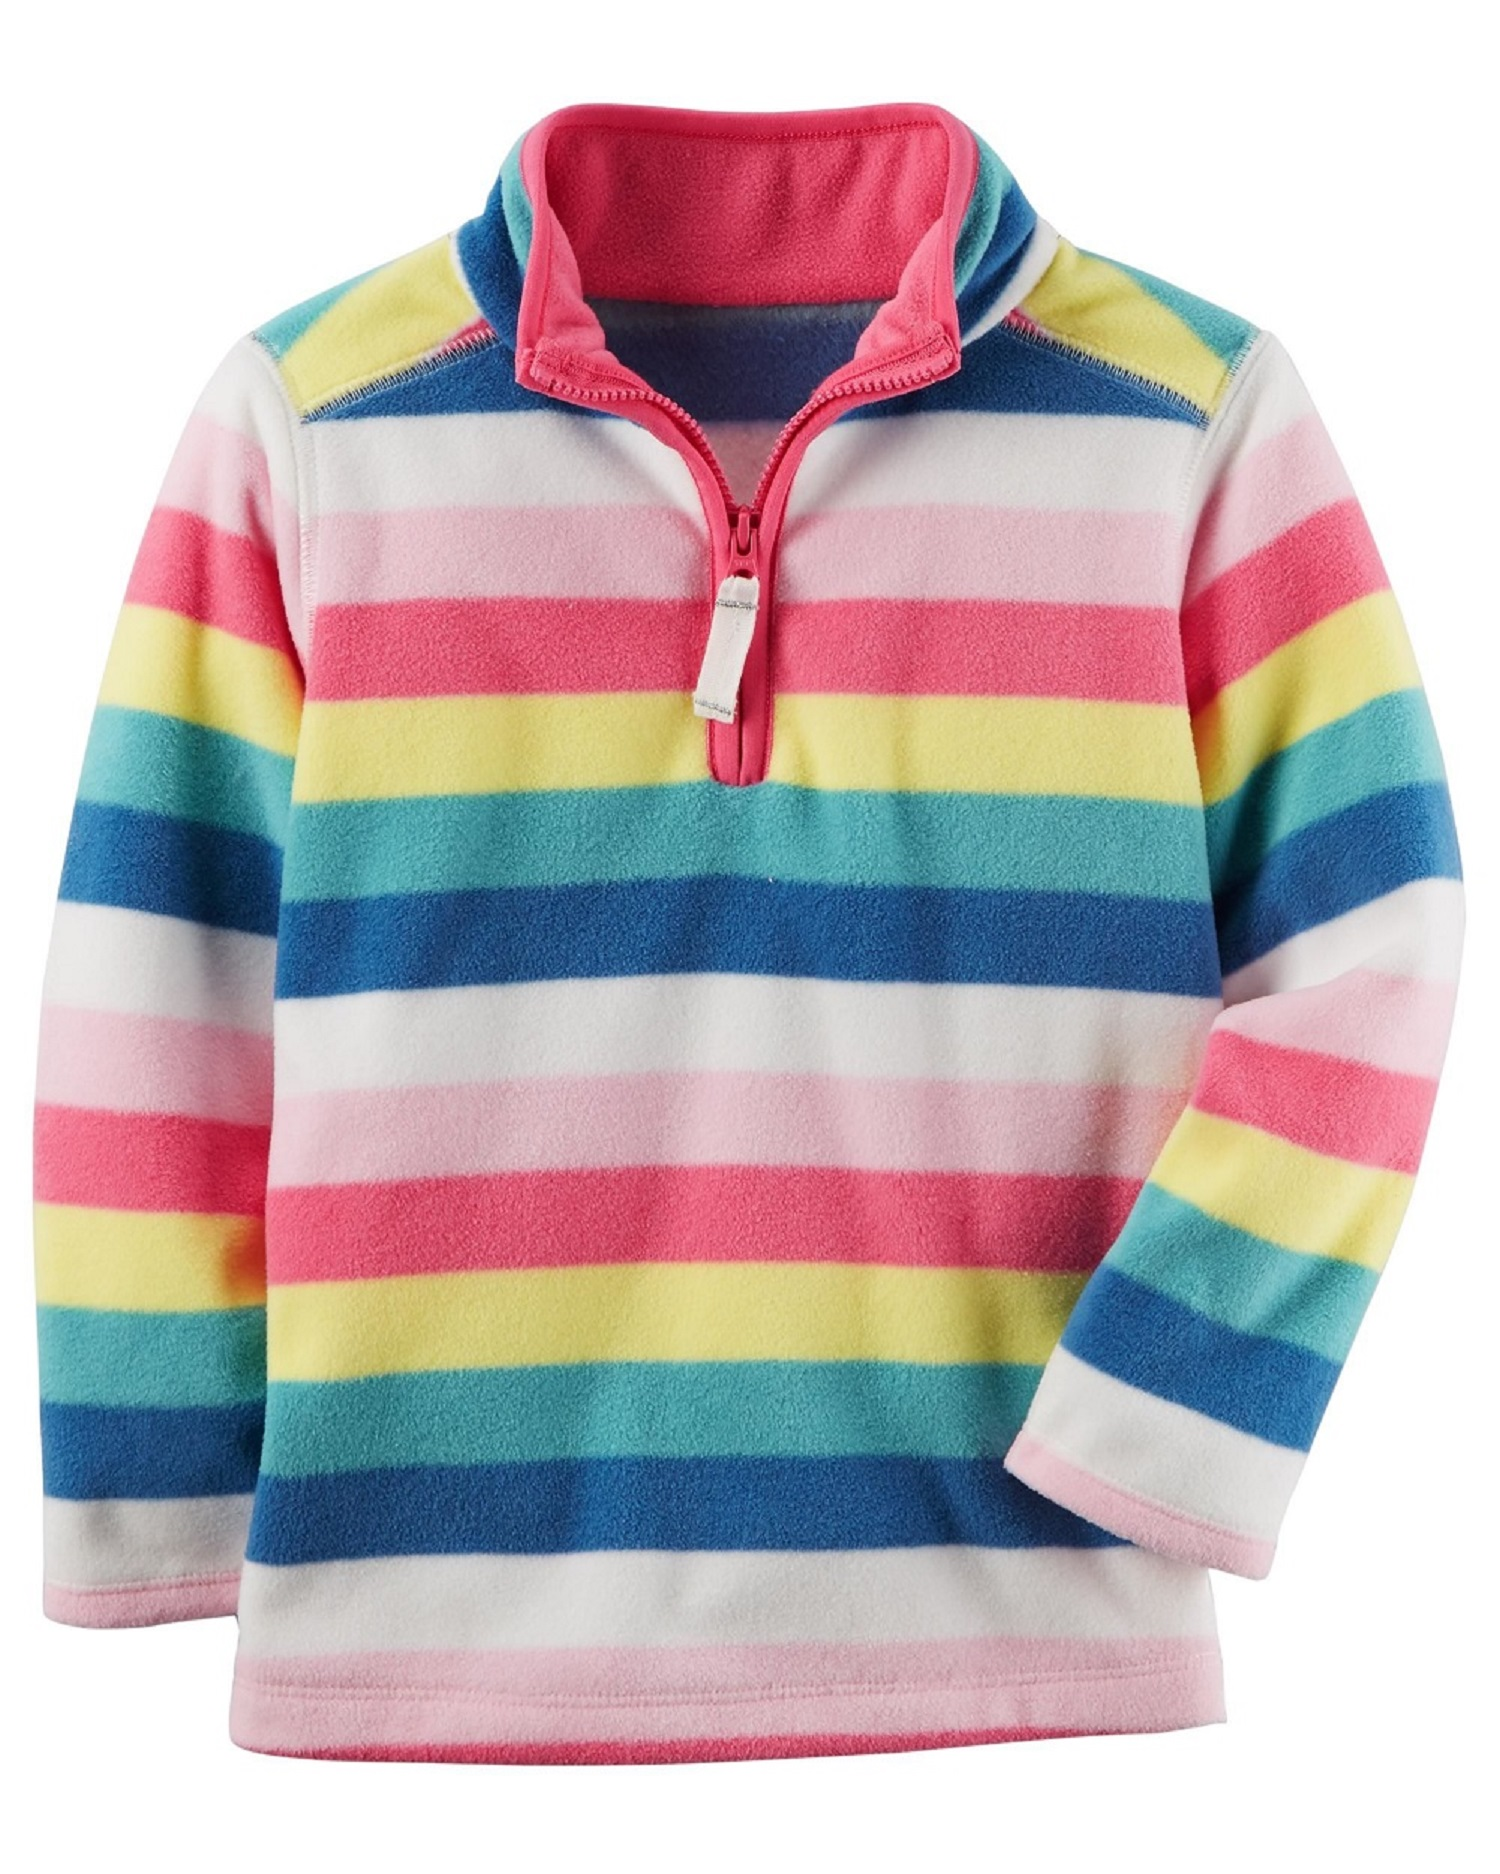 Carter's Baby Girls' Striped Half Zip Fleece Pullover Top; Multi-Color, 3 Months